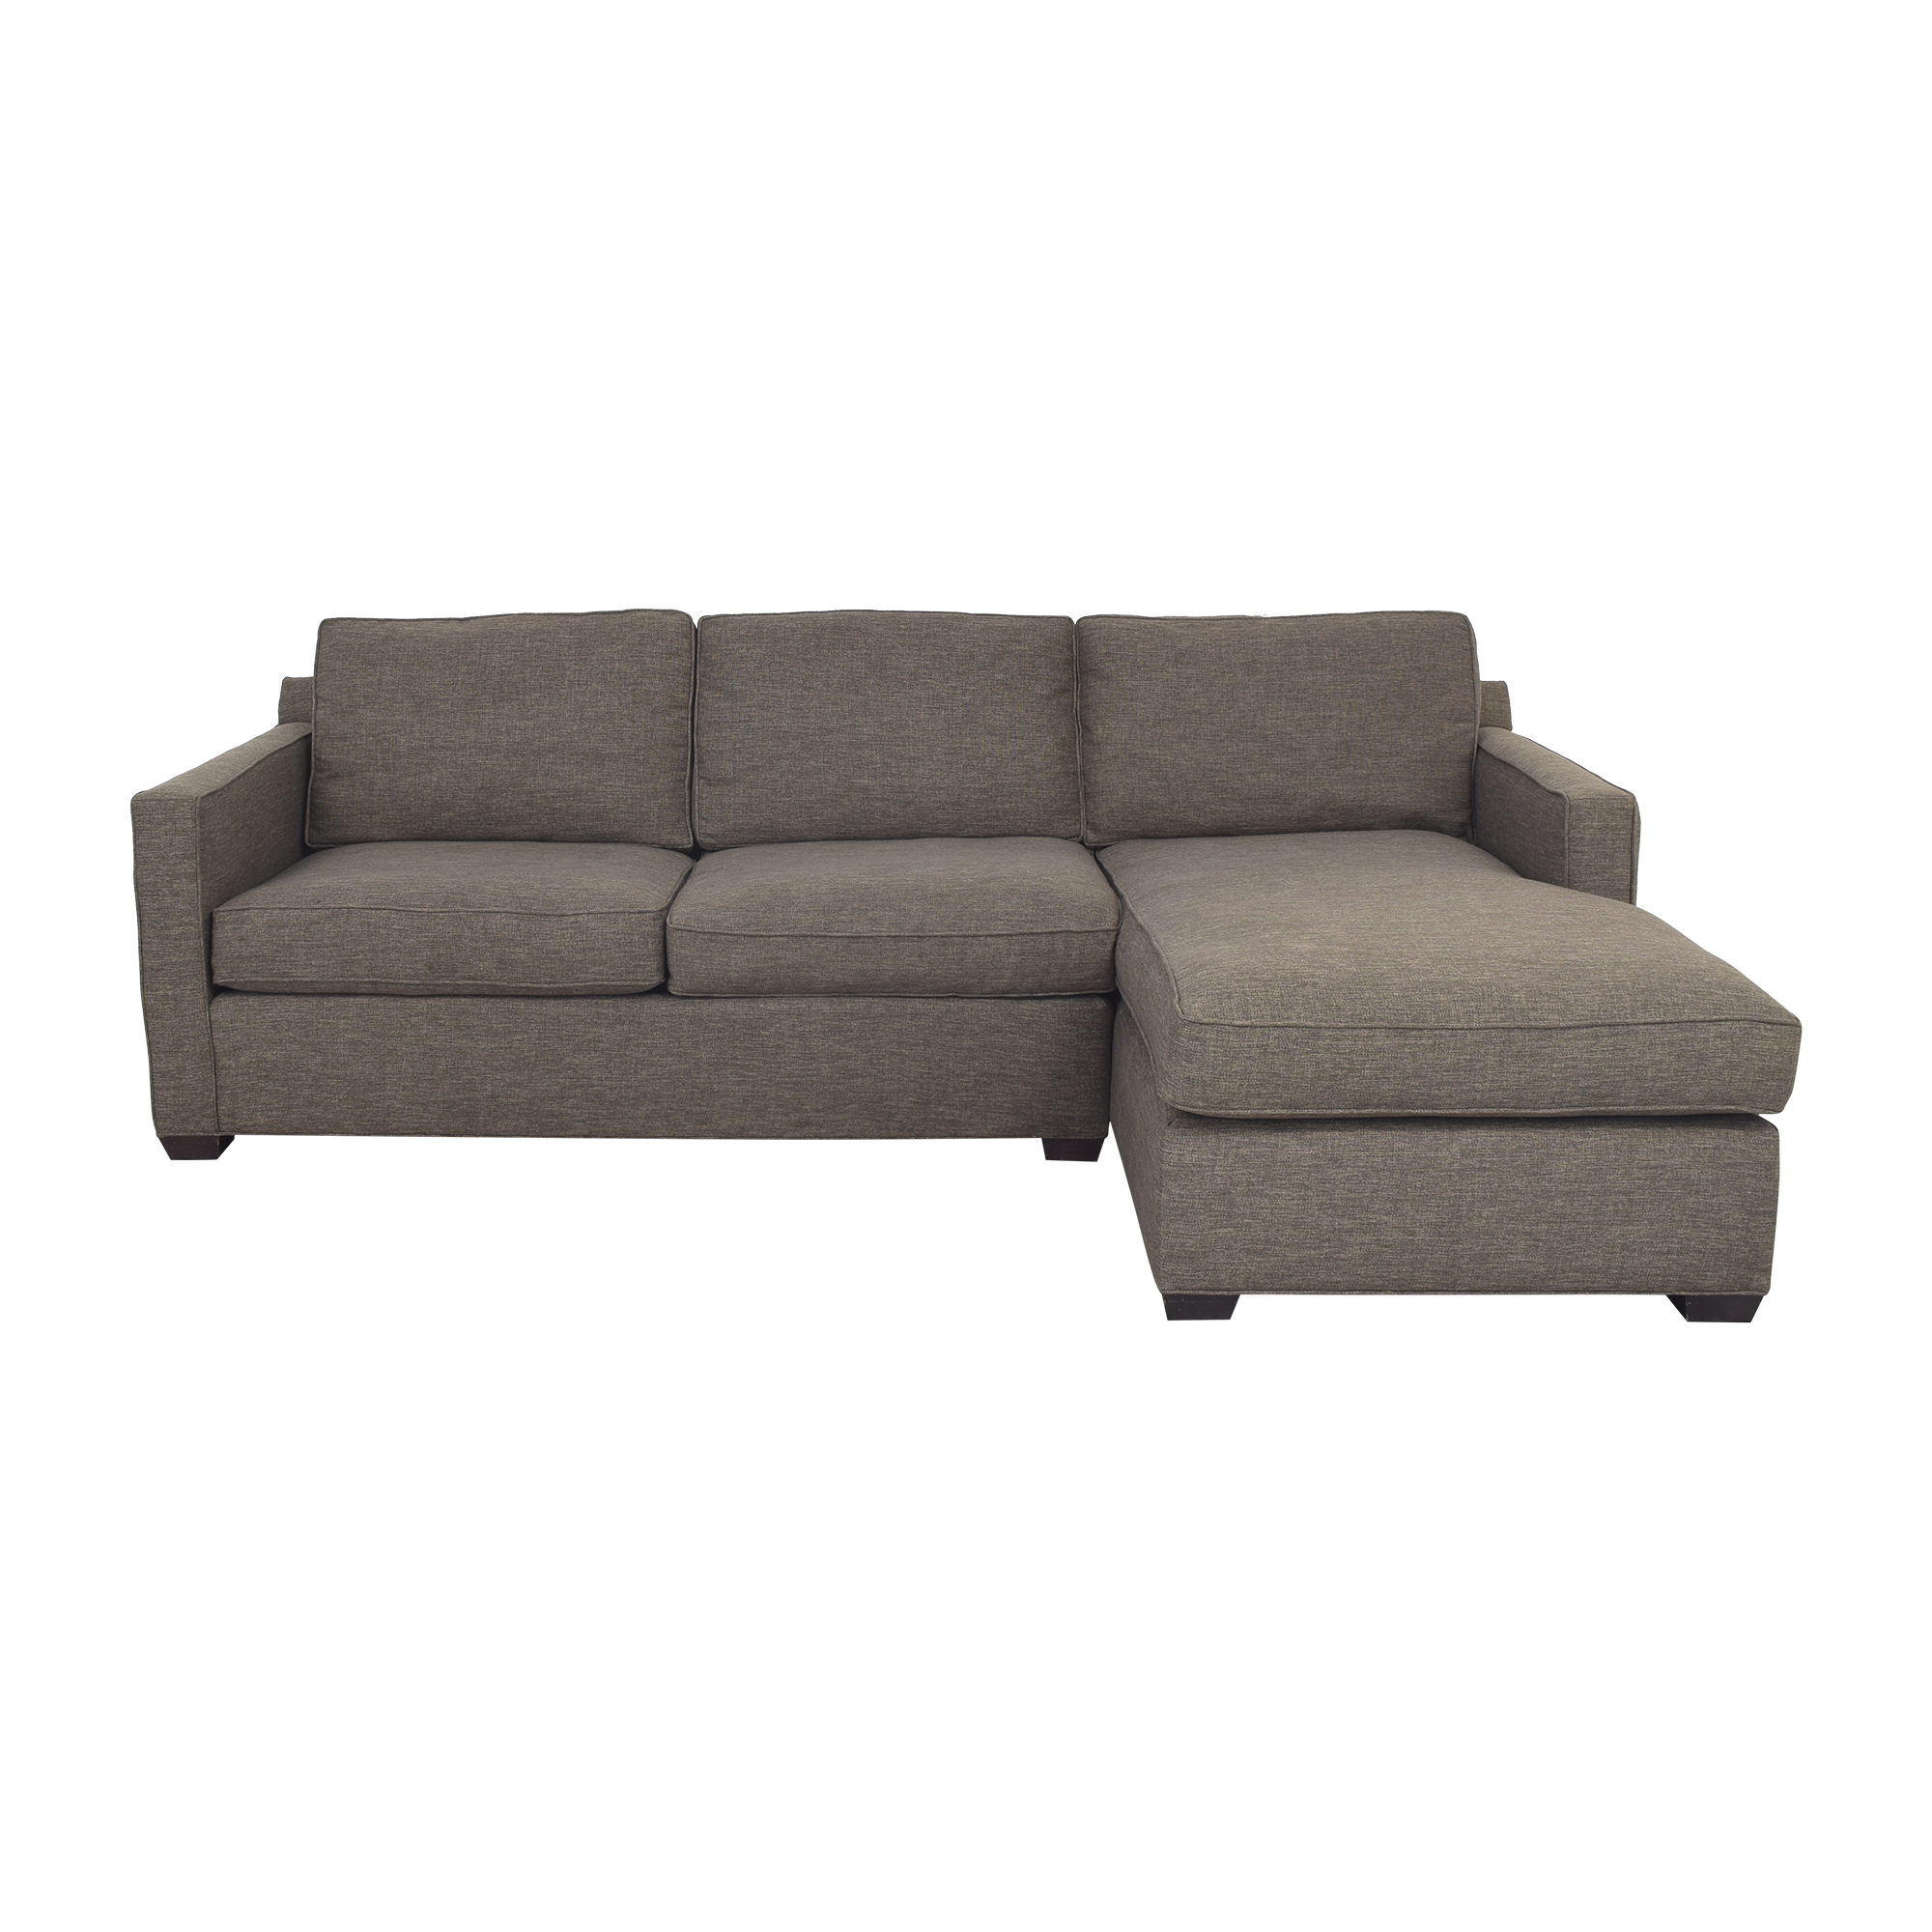 Crate & Barrel Sectional Sofa with Chaise / Sectionals